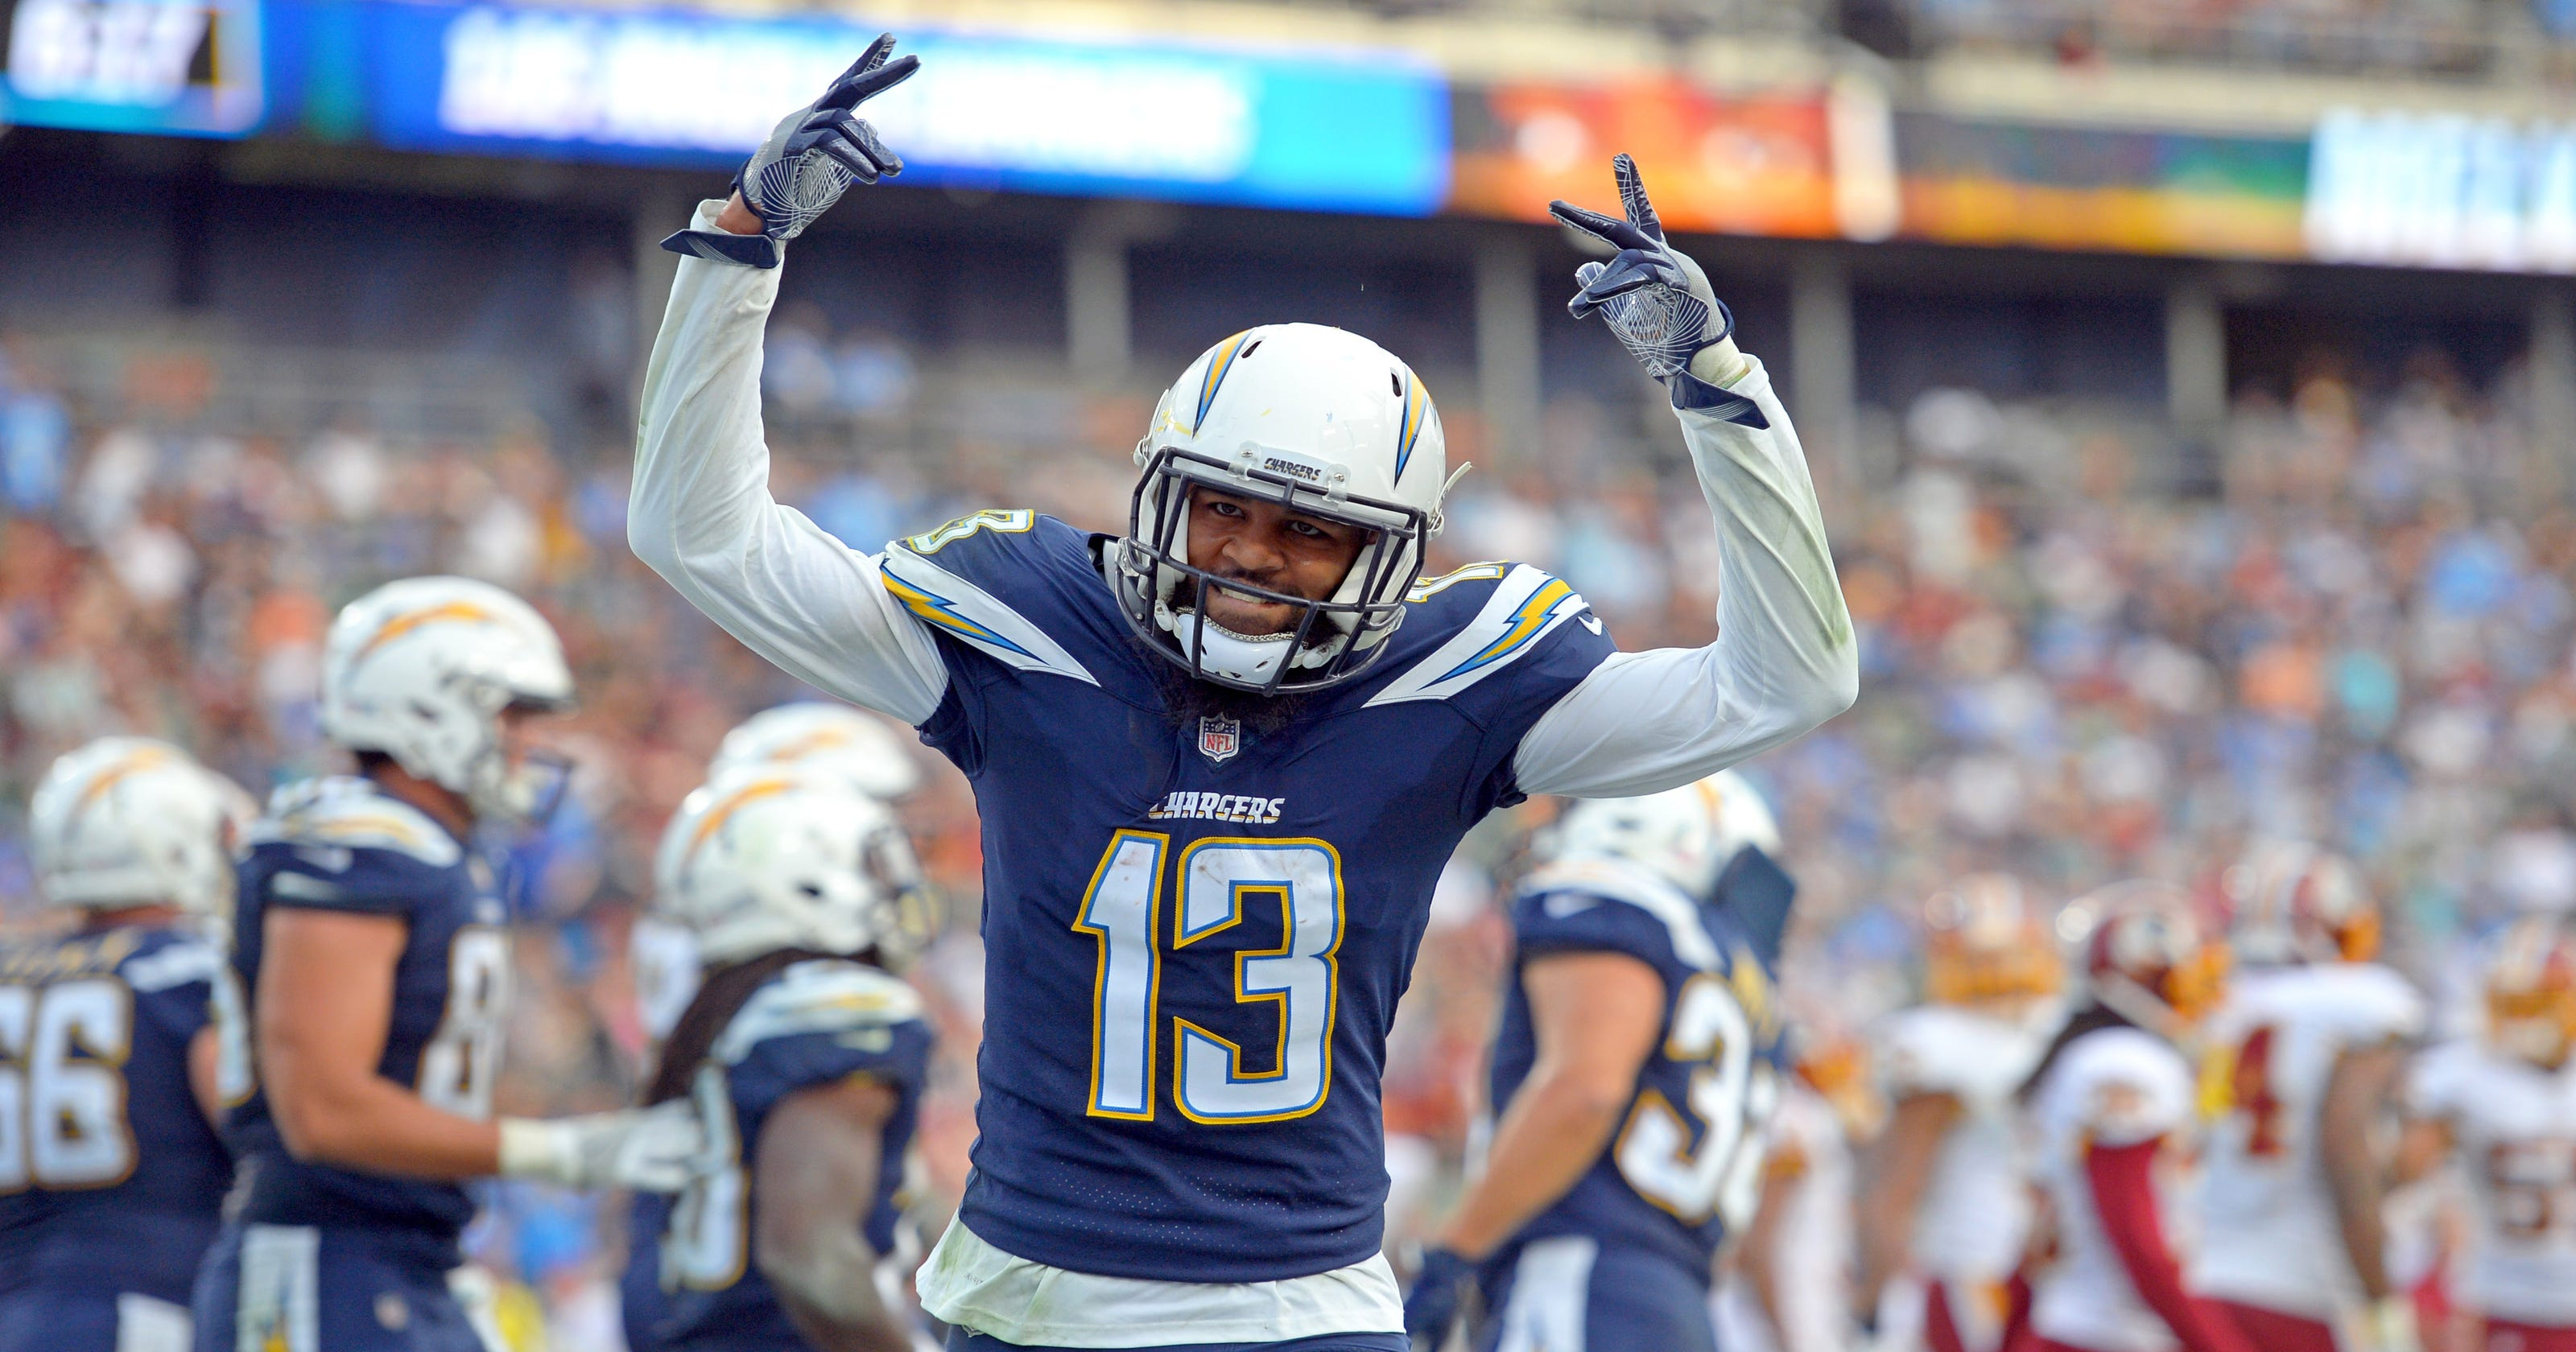 ab3e8f6e0 Jolting the Bolts: How the Chargers saved their season after 0-4 start